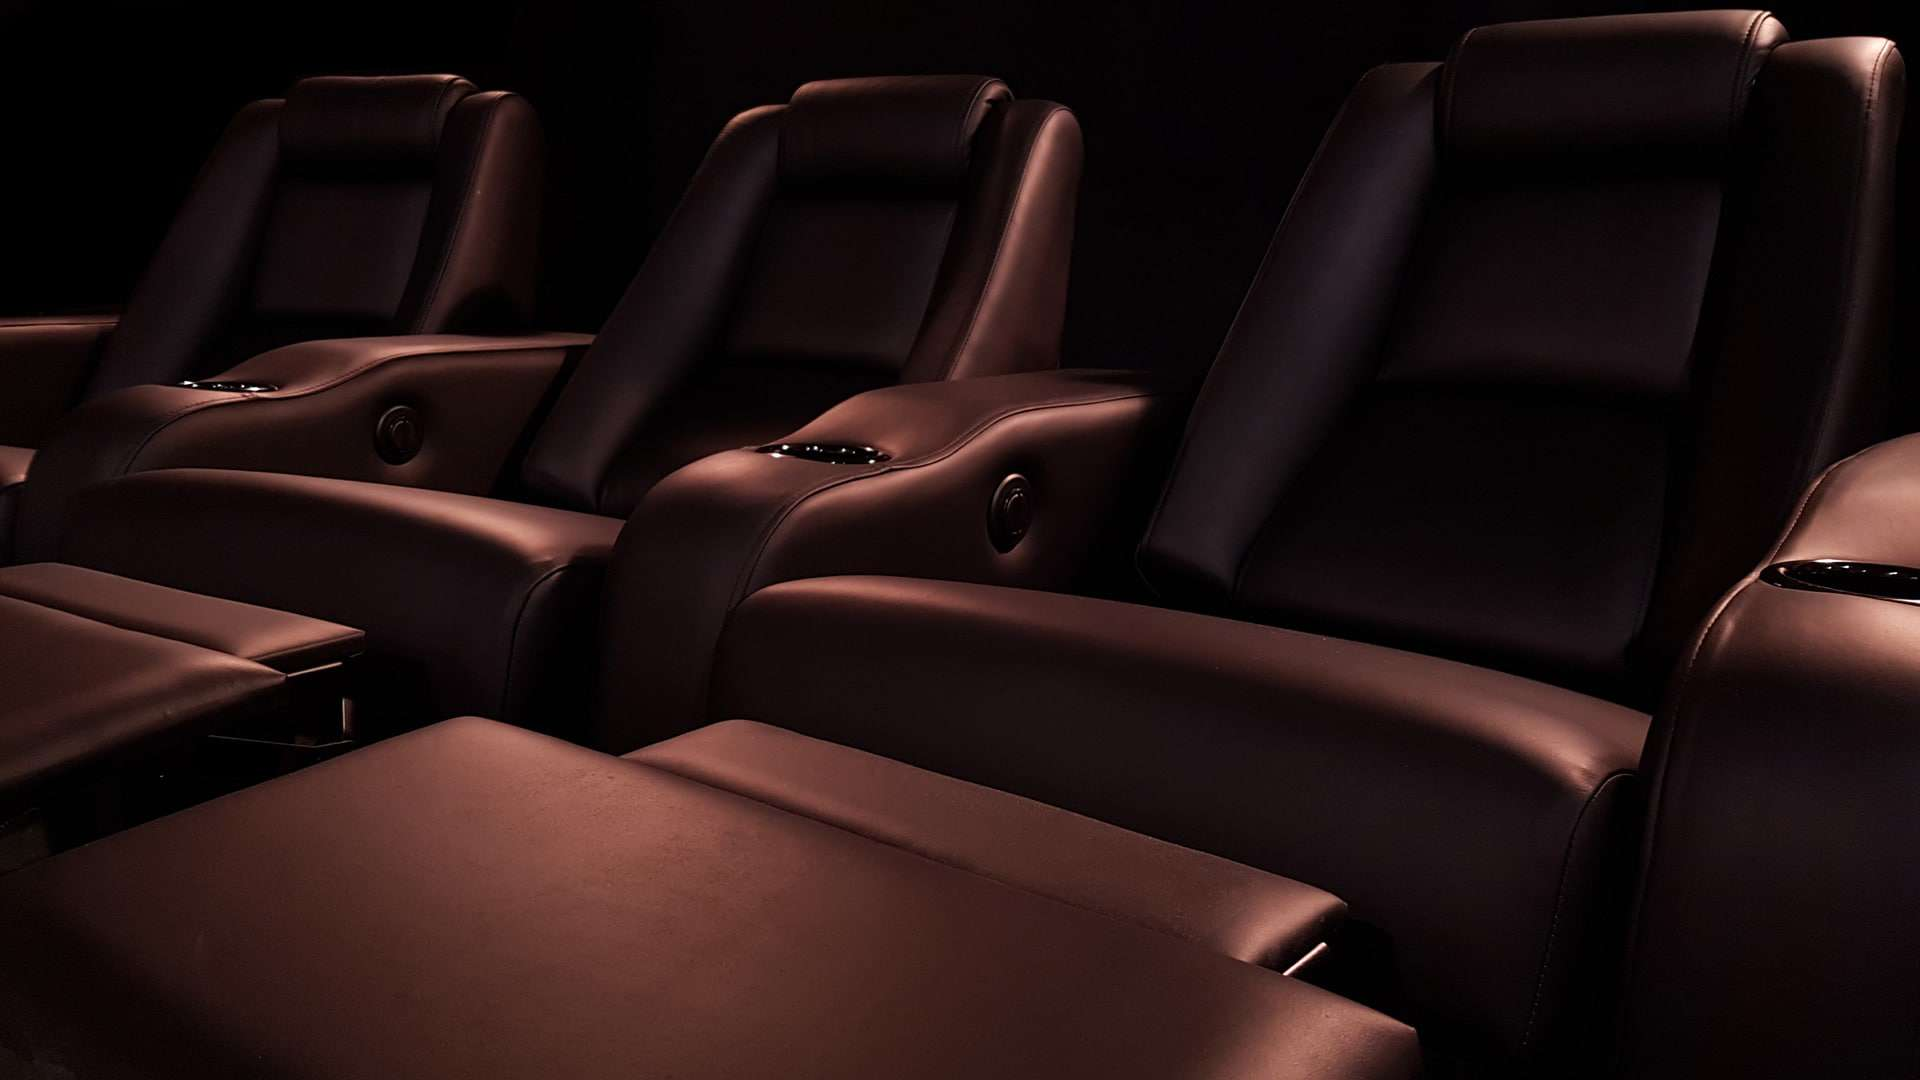 Home theater seating custom design Elite HTS